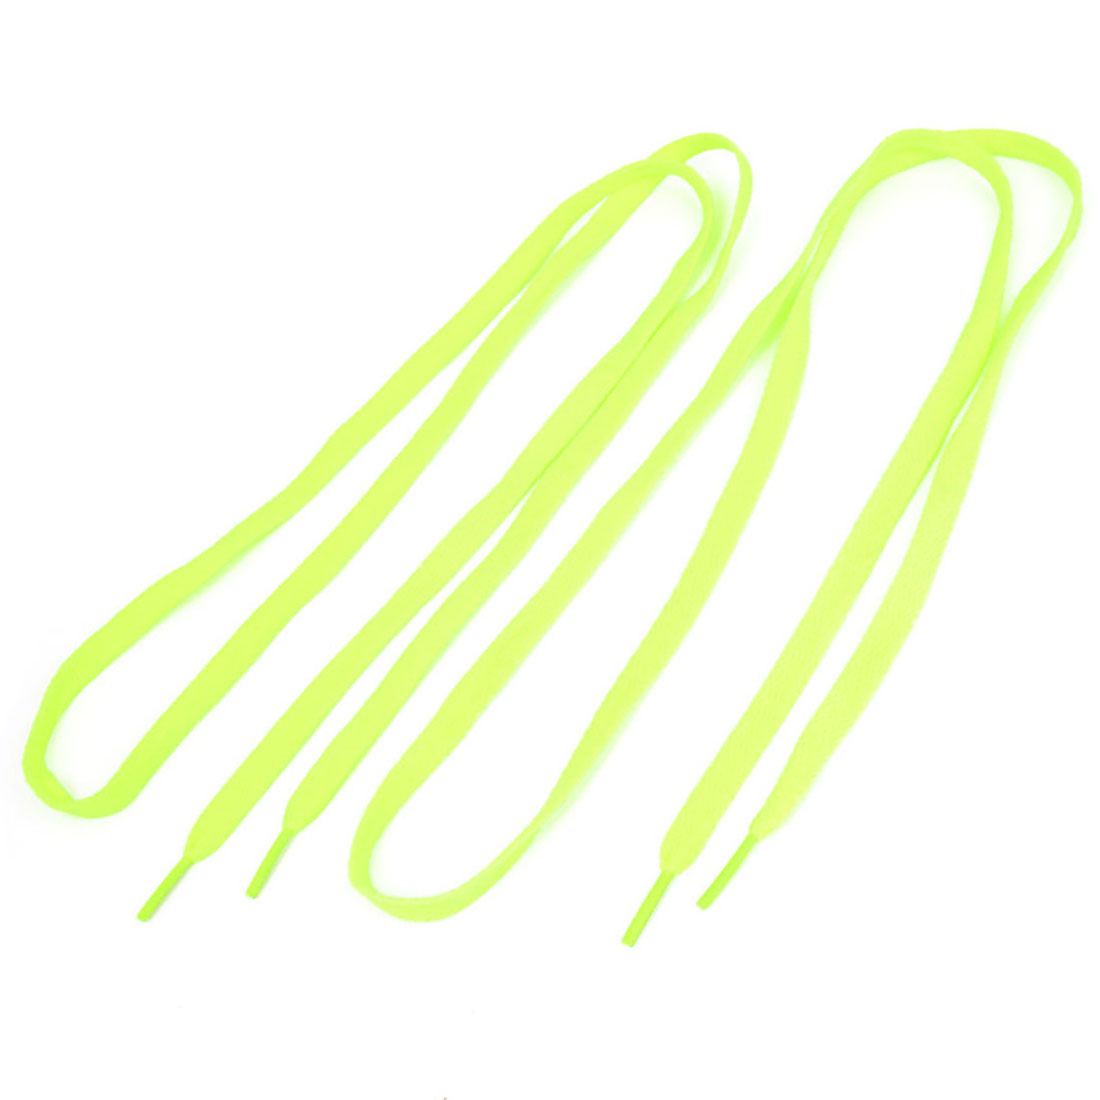 Pair Yellow Green Plastic Tip Flat Shoelaces Shoe Lace String for Sports Shoes Boots Sneakers Skates